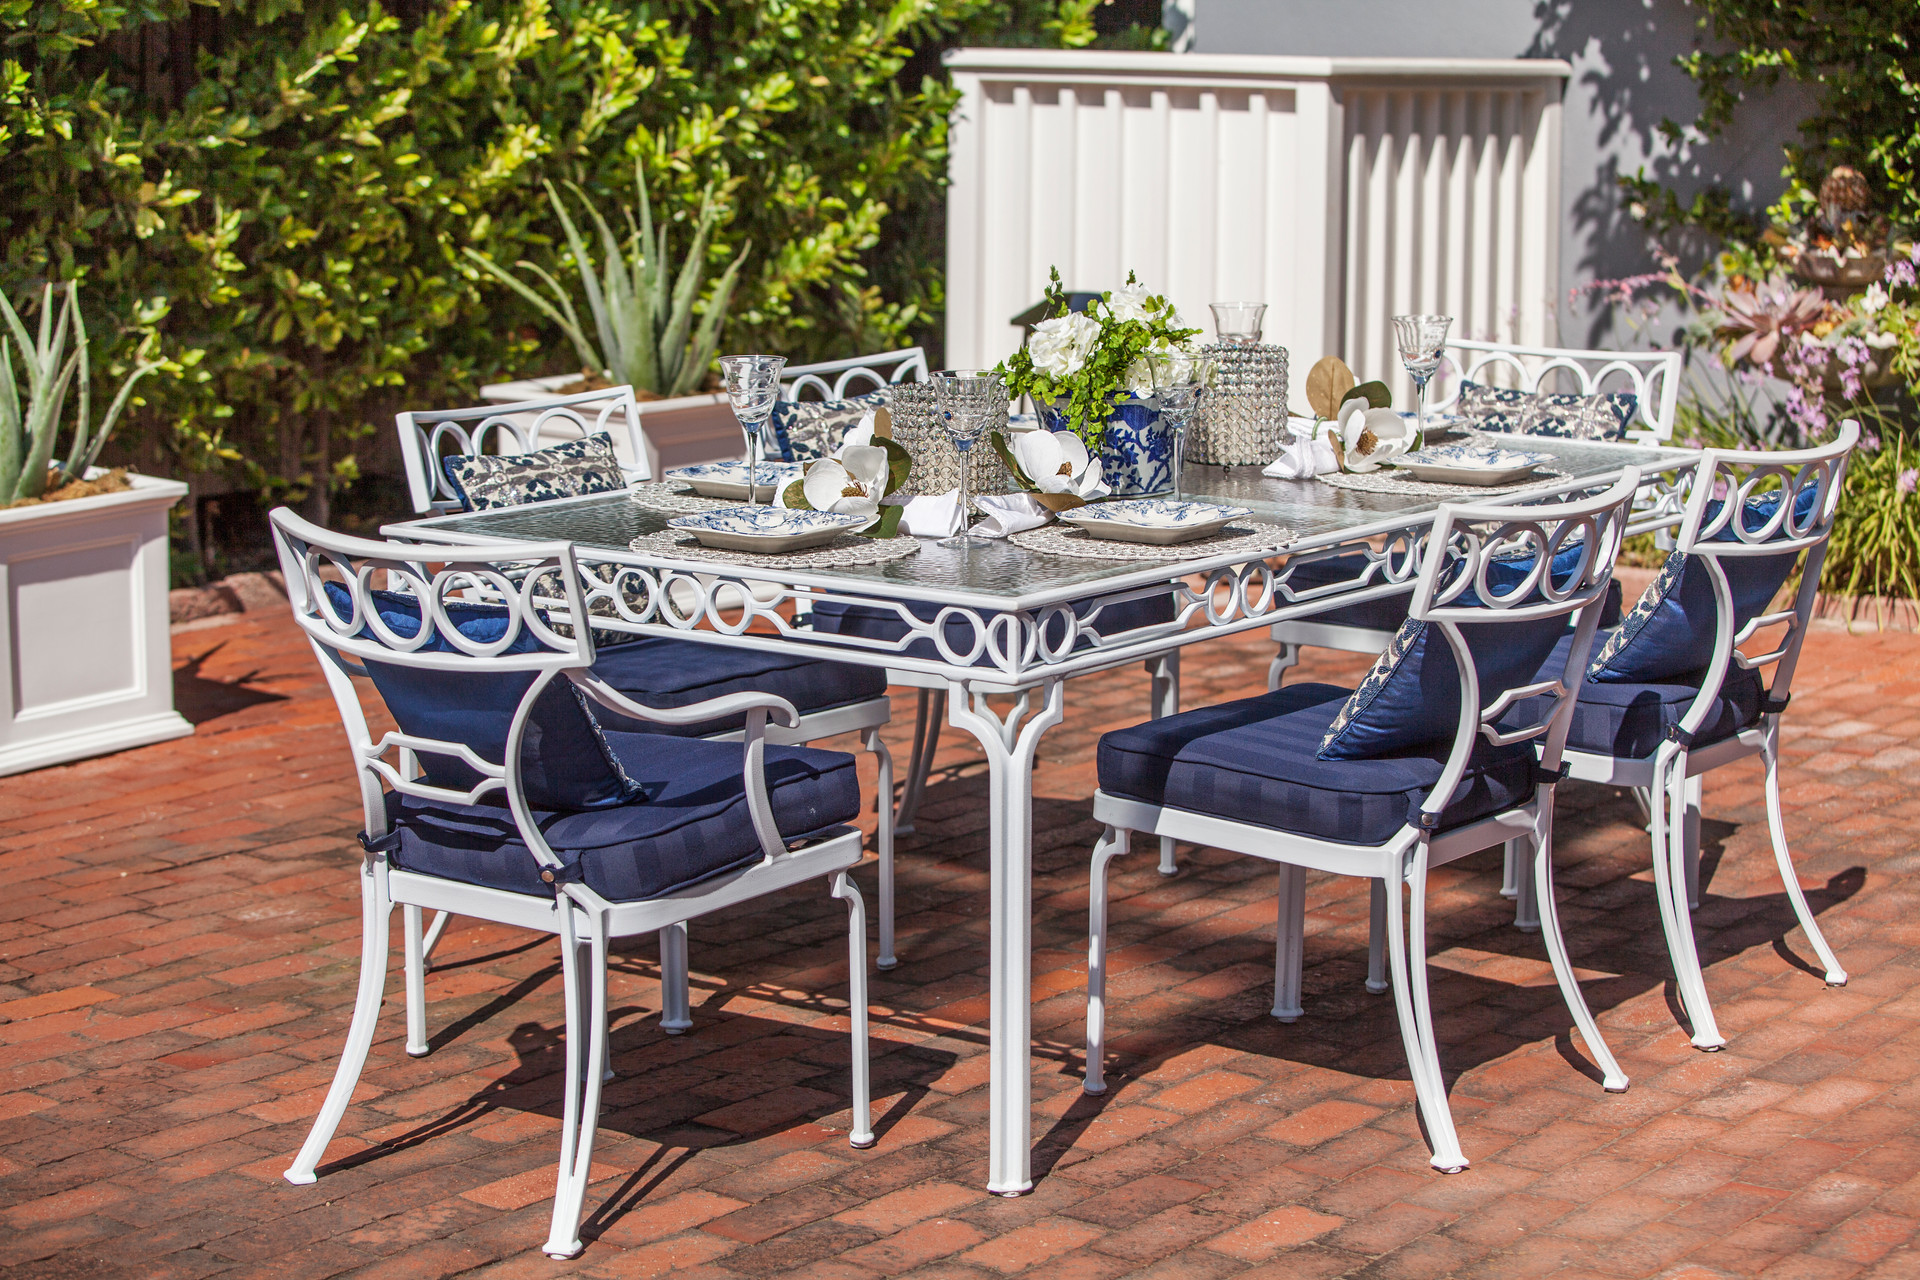 After_LaCanada_Patio_Storybook_Styling_C